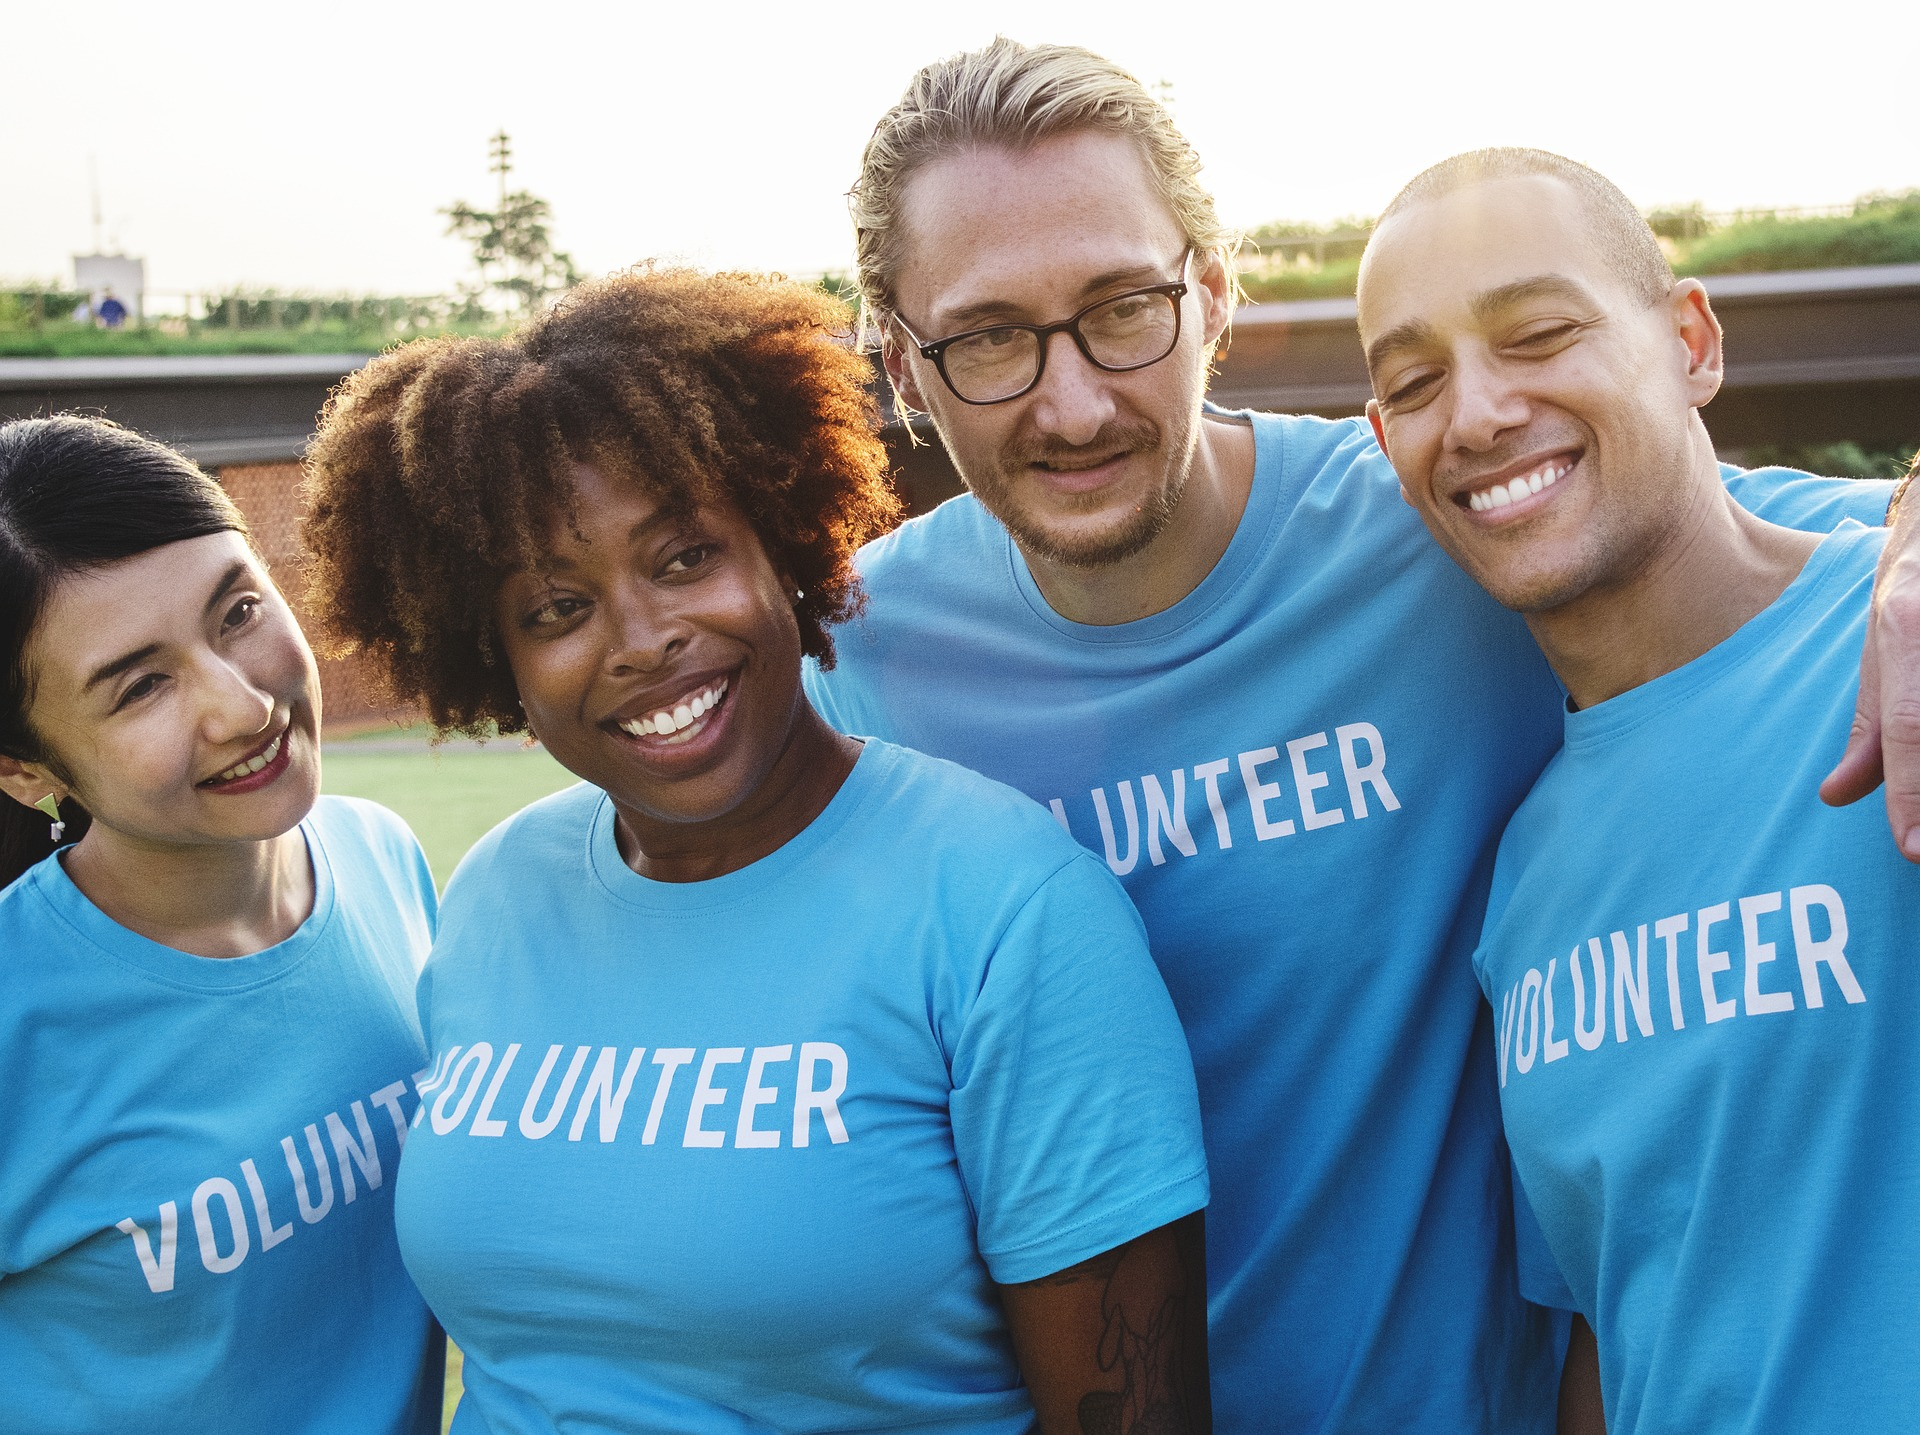 Find one volunteering opportunity. Pictured: Four people with 'volunteer' shirts.